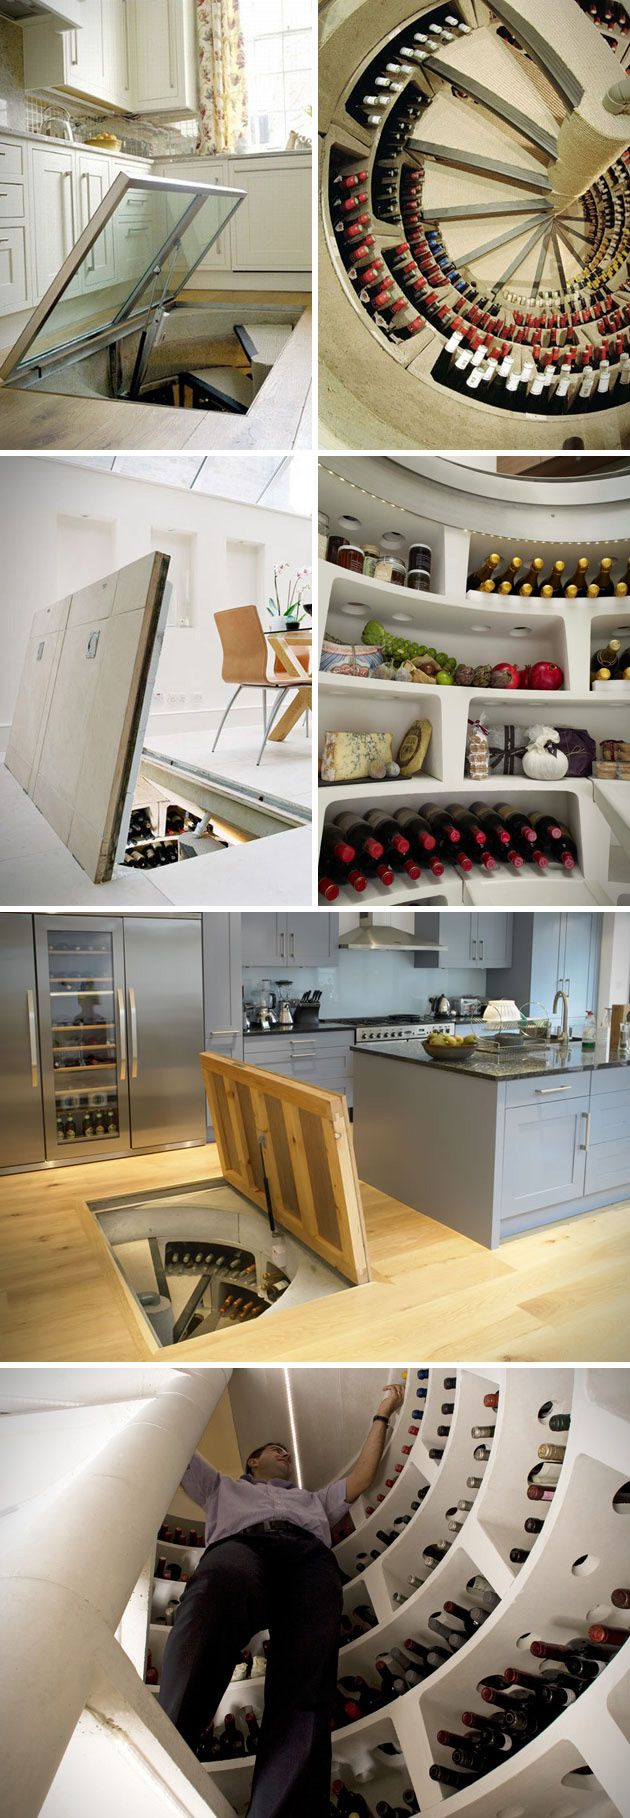 "If you're looking for a wine cellar that will really add that ""Wow"" factor to your home, look no further than these Spiral Wine Cellars.   This underground wine storage solution can be installed pretty much anywhere you can dig. The spiral cellars are a concrete constructed cylindrical system that is completely watertight, and comes equipped with a trapdoor at the top to access your prized collection of booze."